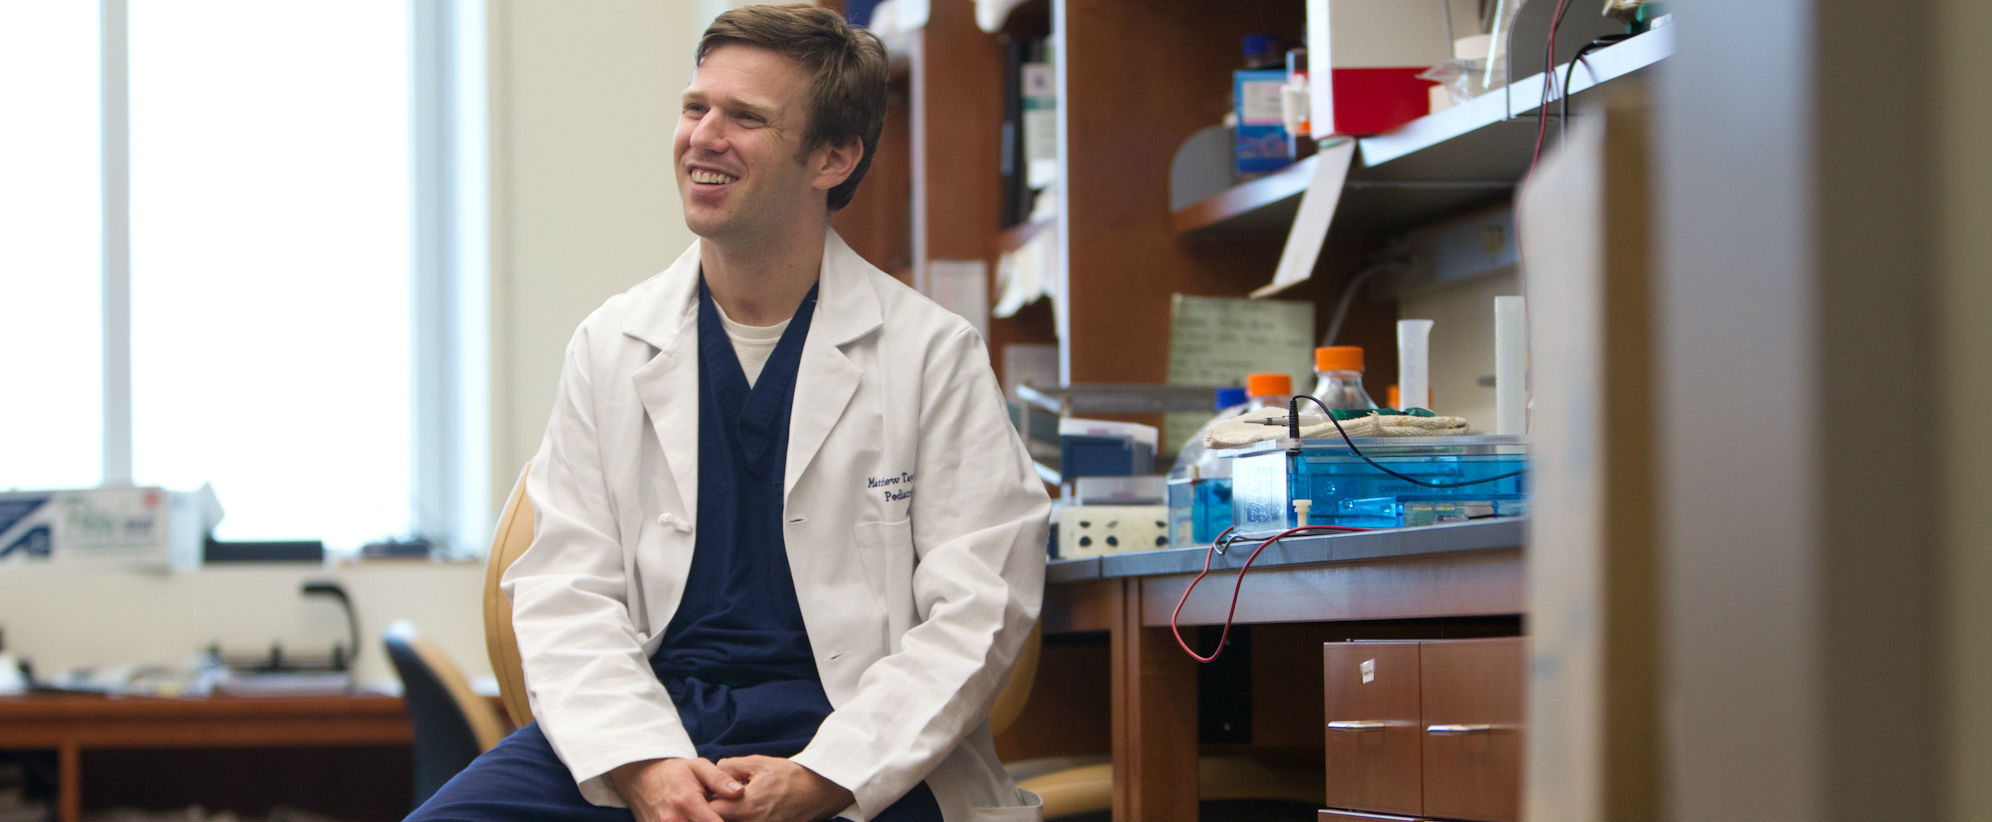 man in white coat sitting in lab